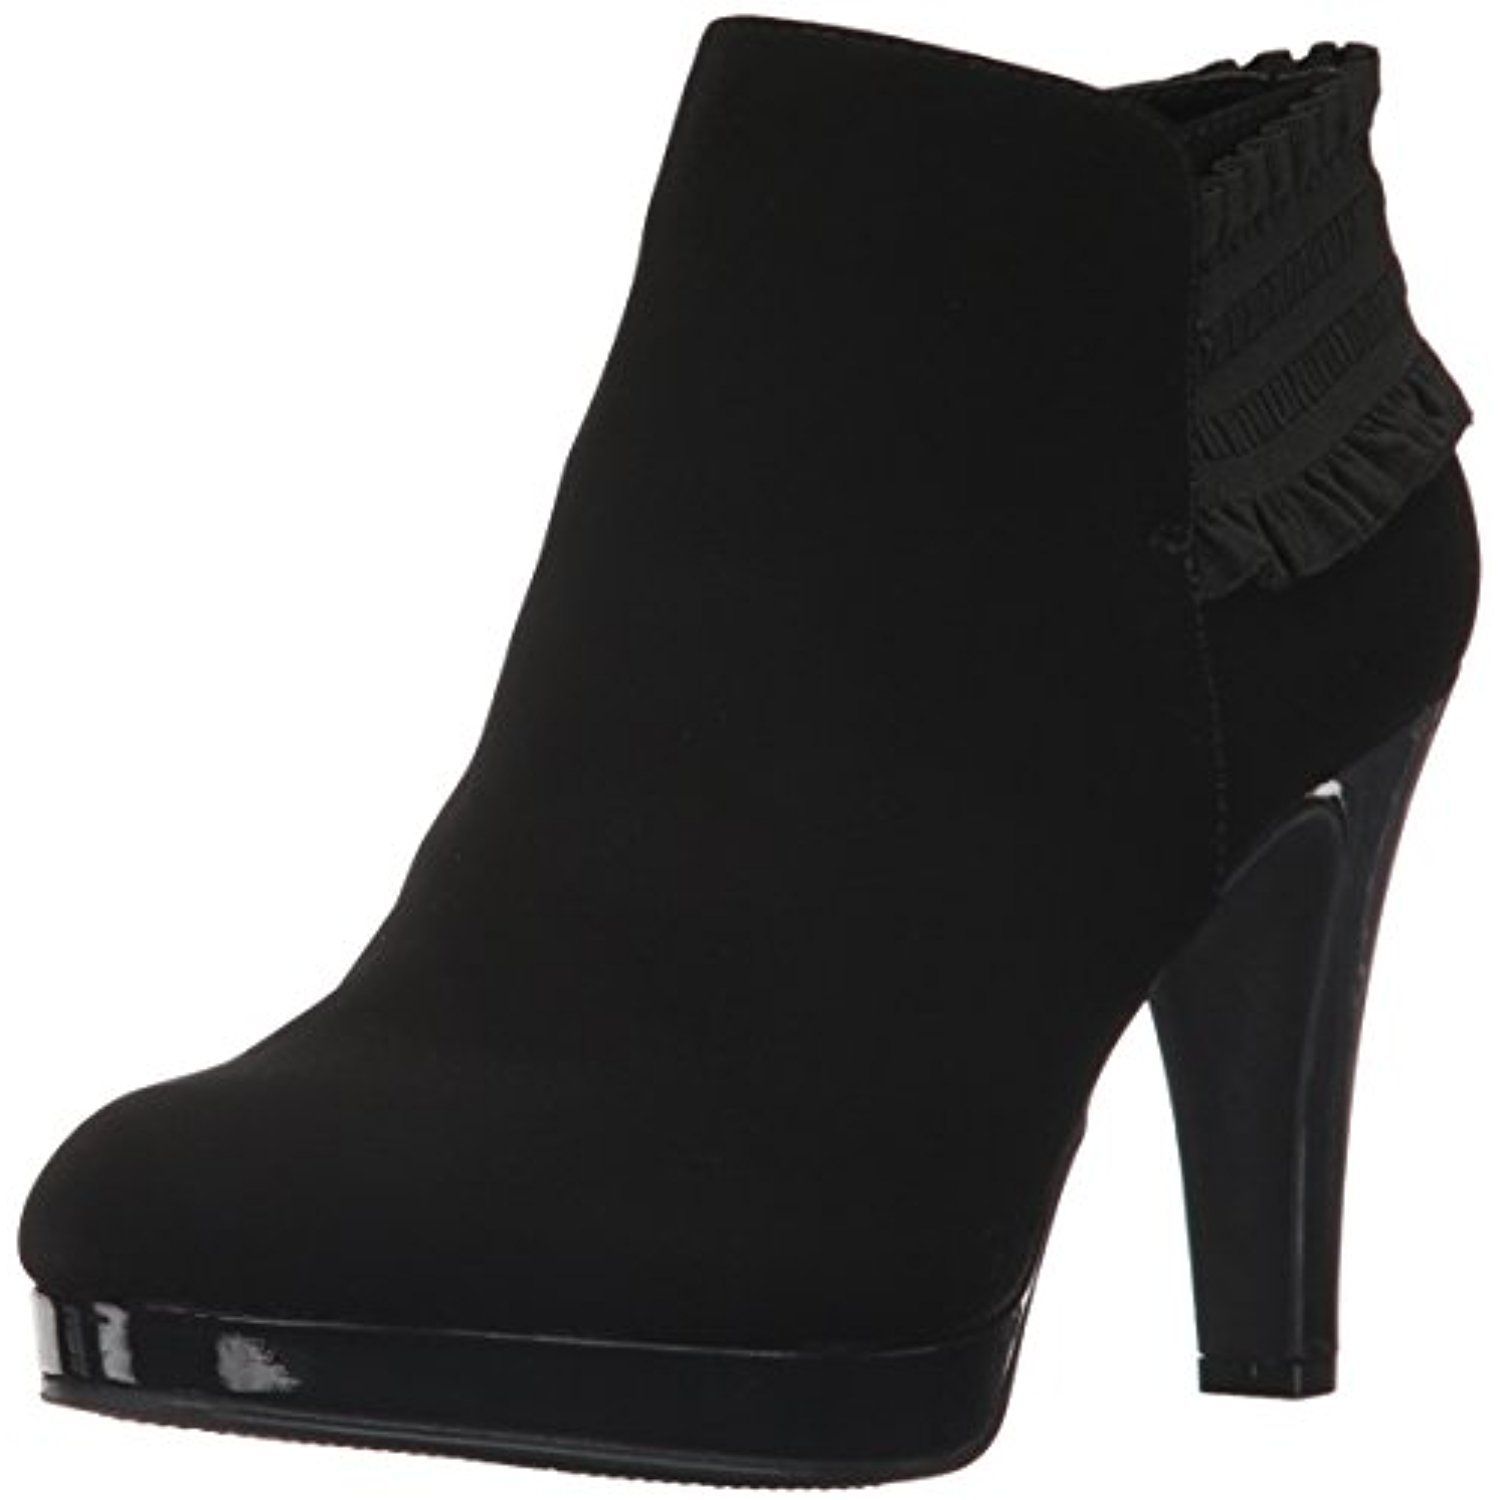 Women's Part Film Platform Heeled Bootie Fashion Boot